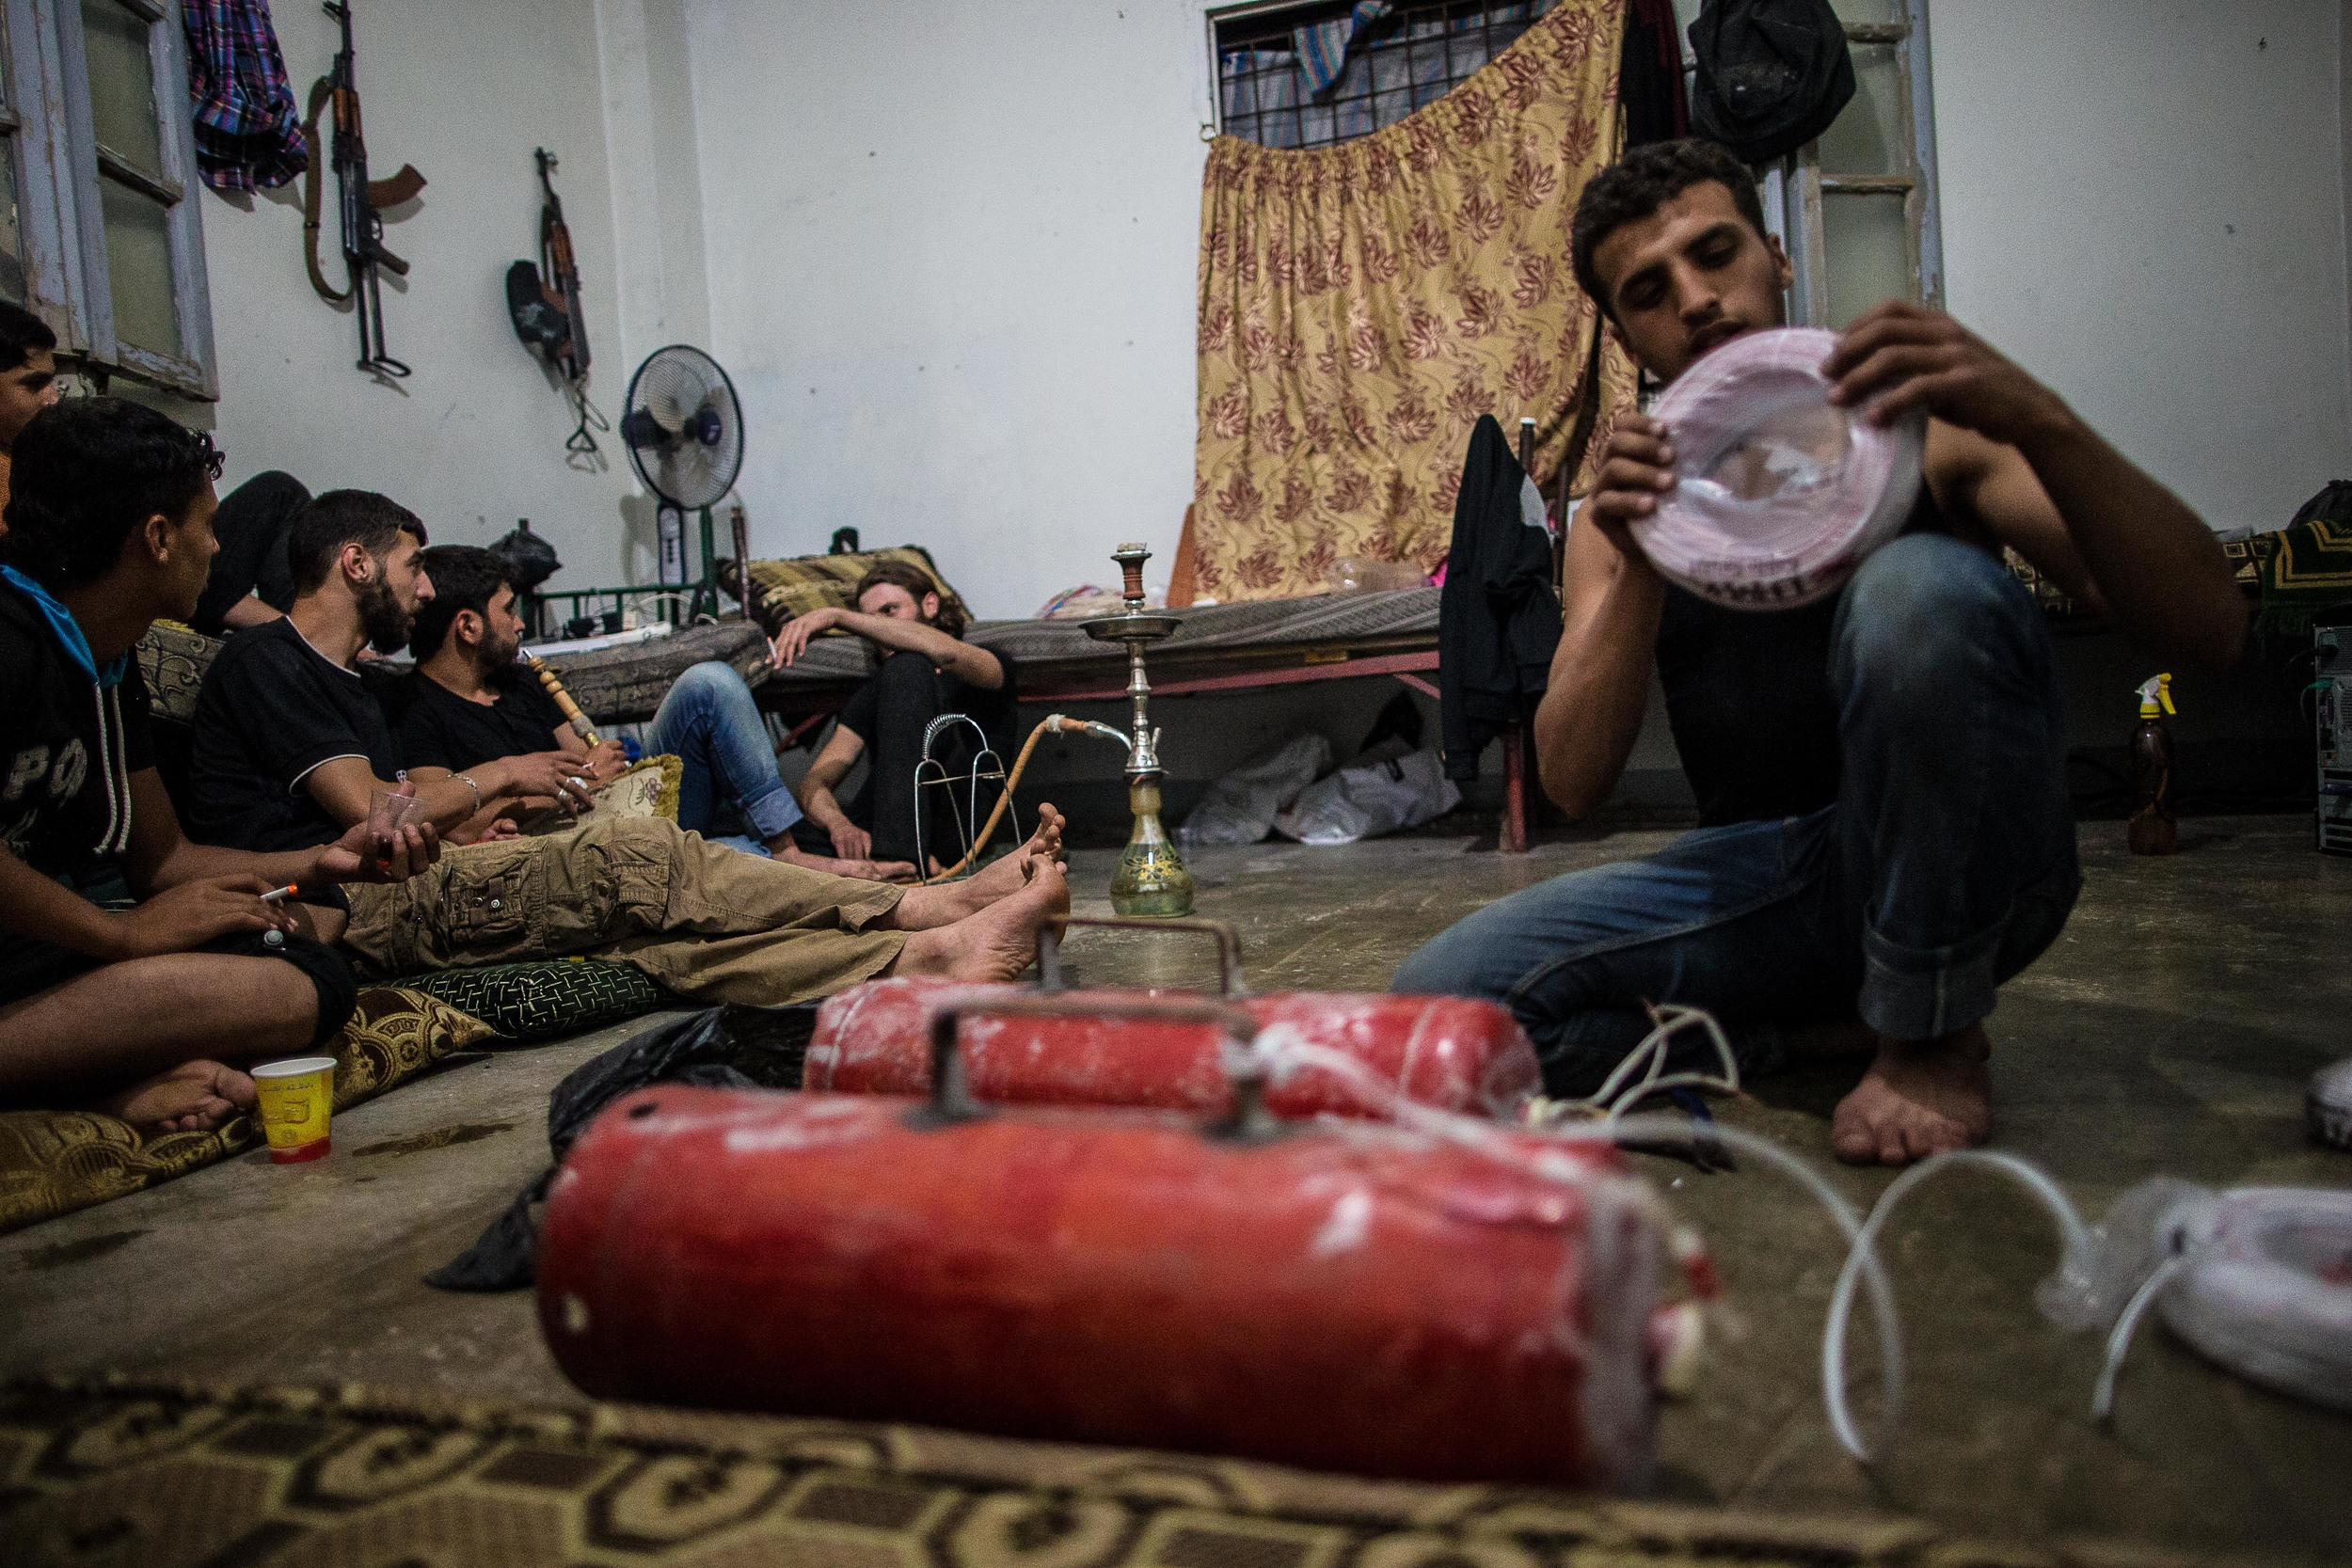 A rebel named Wa'el prepares two homemade explosives the battalion will plant during a night raid in regime-held territory. The battalion occasionally undertakes a small operation under the cover of night, typically to check the position of enemies, steal desperately needed weapons and munitions, and keep regime fighters on defense.